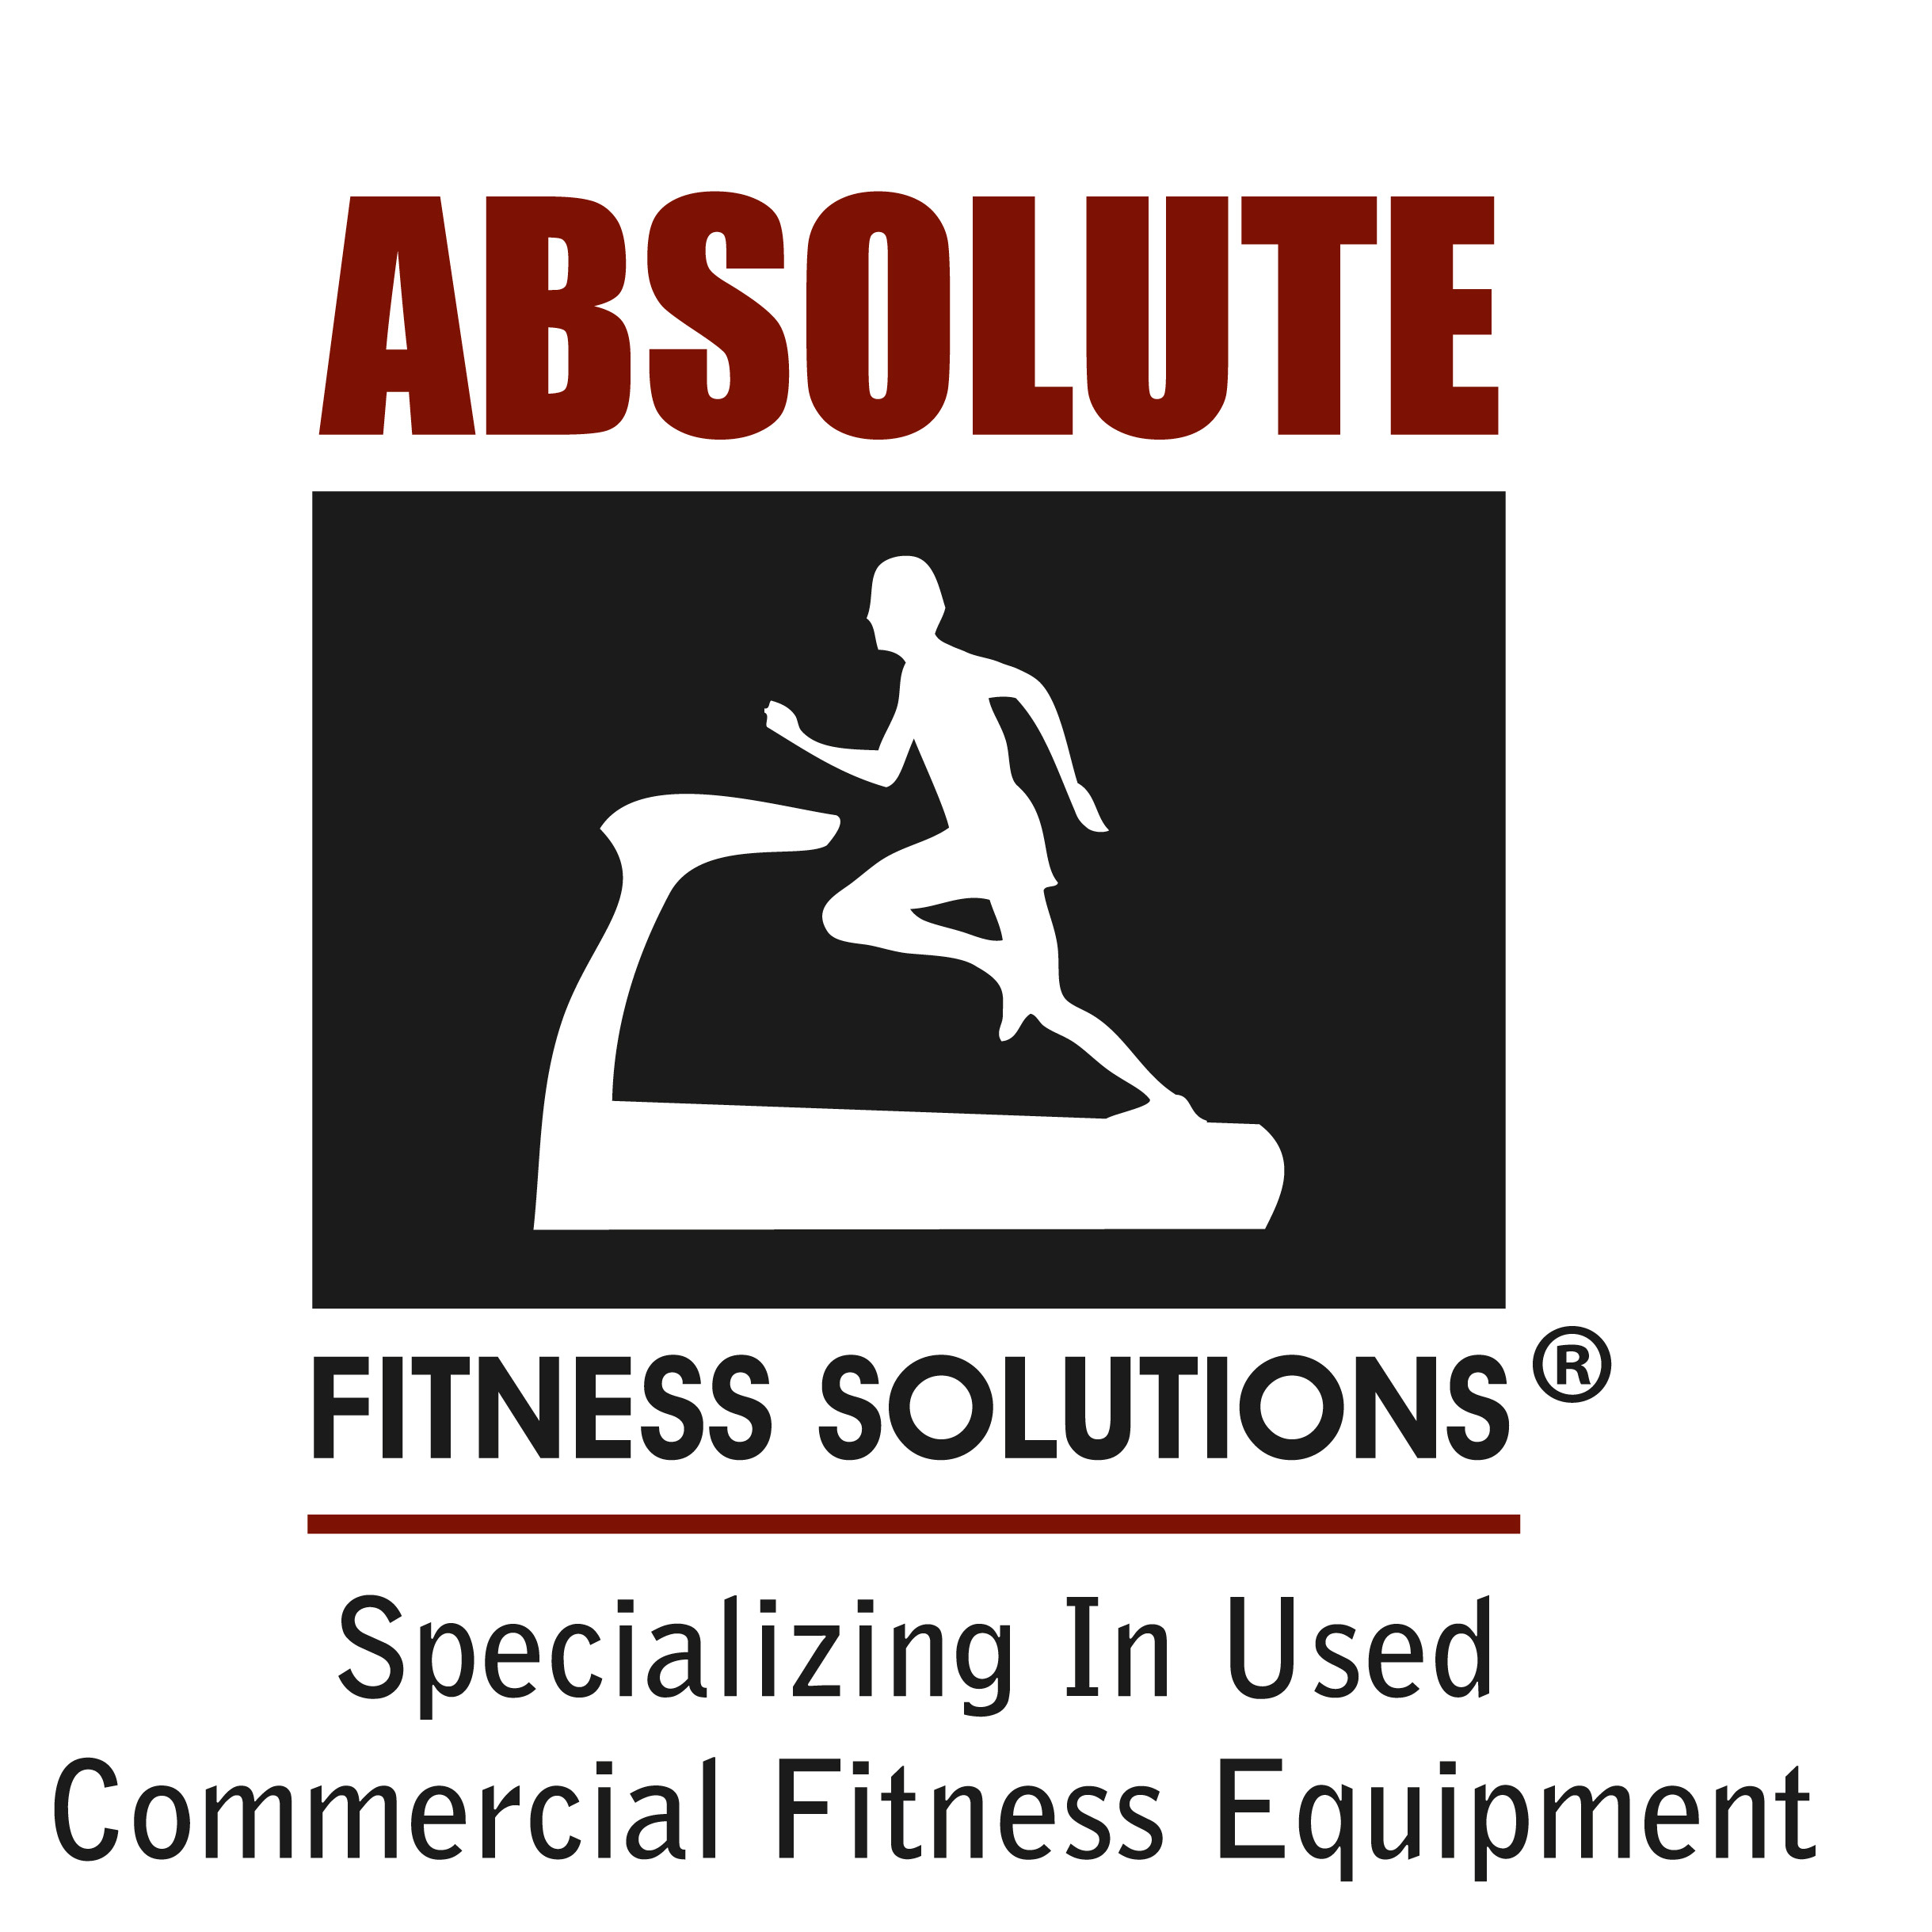 Absolute Fitness Solutions Inc. - York, PA - Company Profile